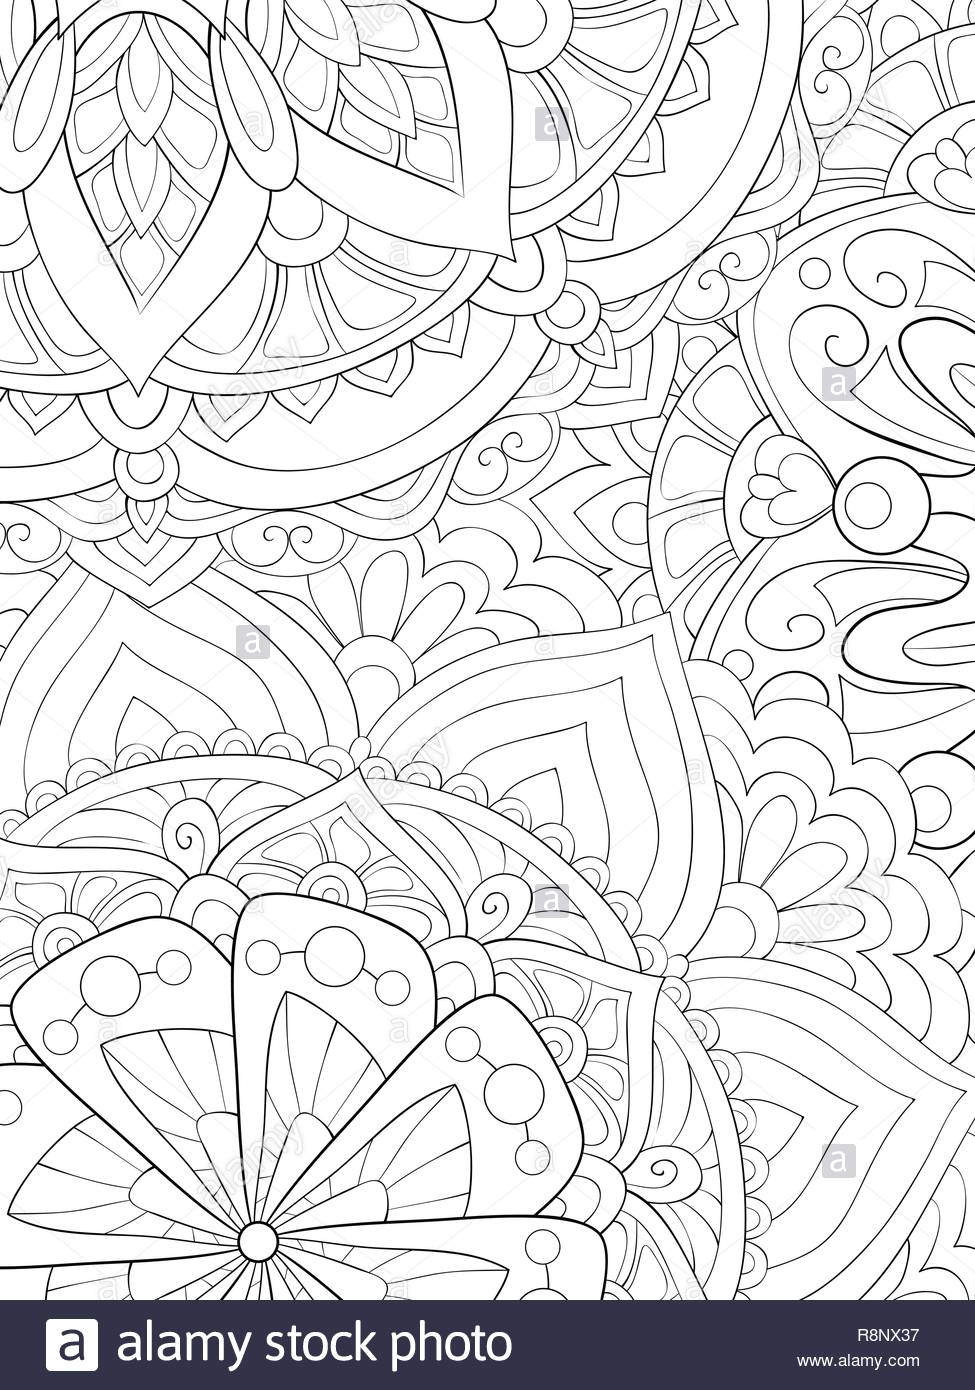 An abstract floral background image for relaxing activity.Zen art ...